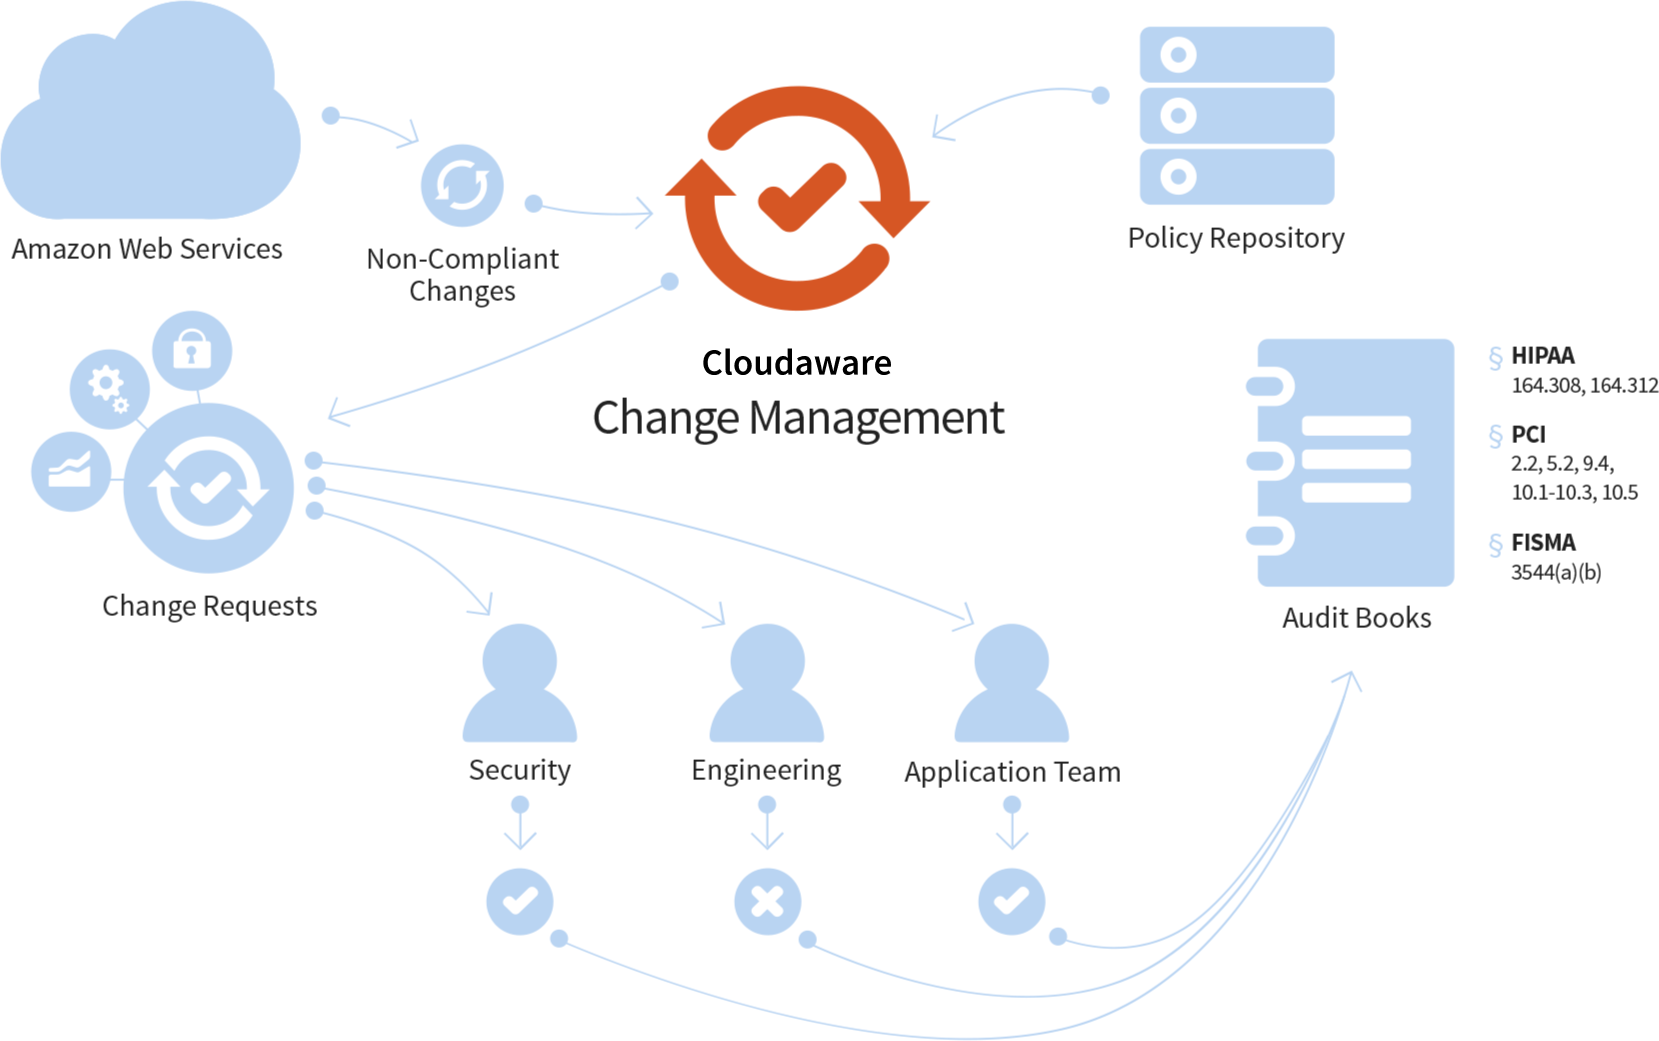 CloudAware Change Management diagram